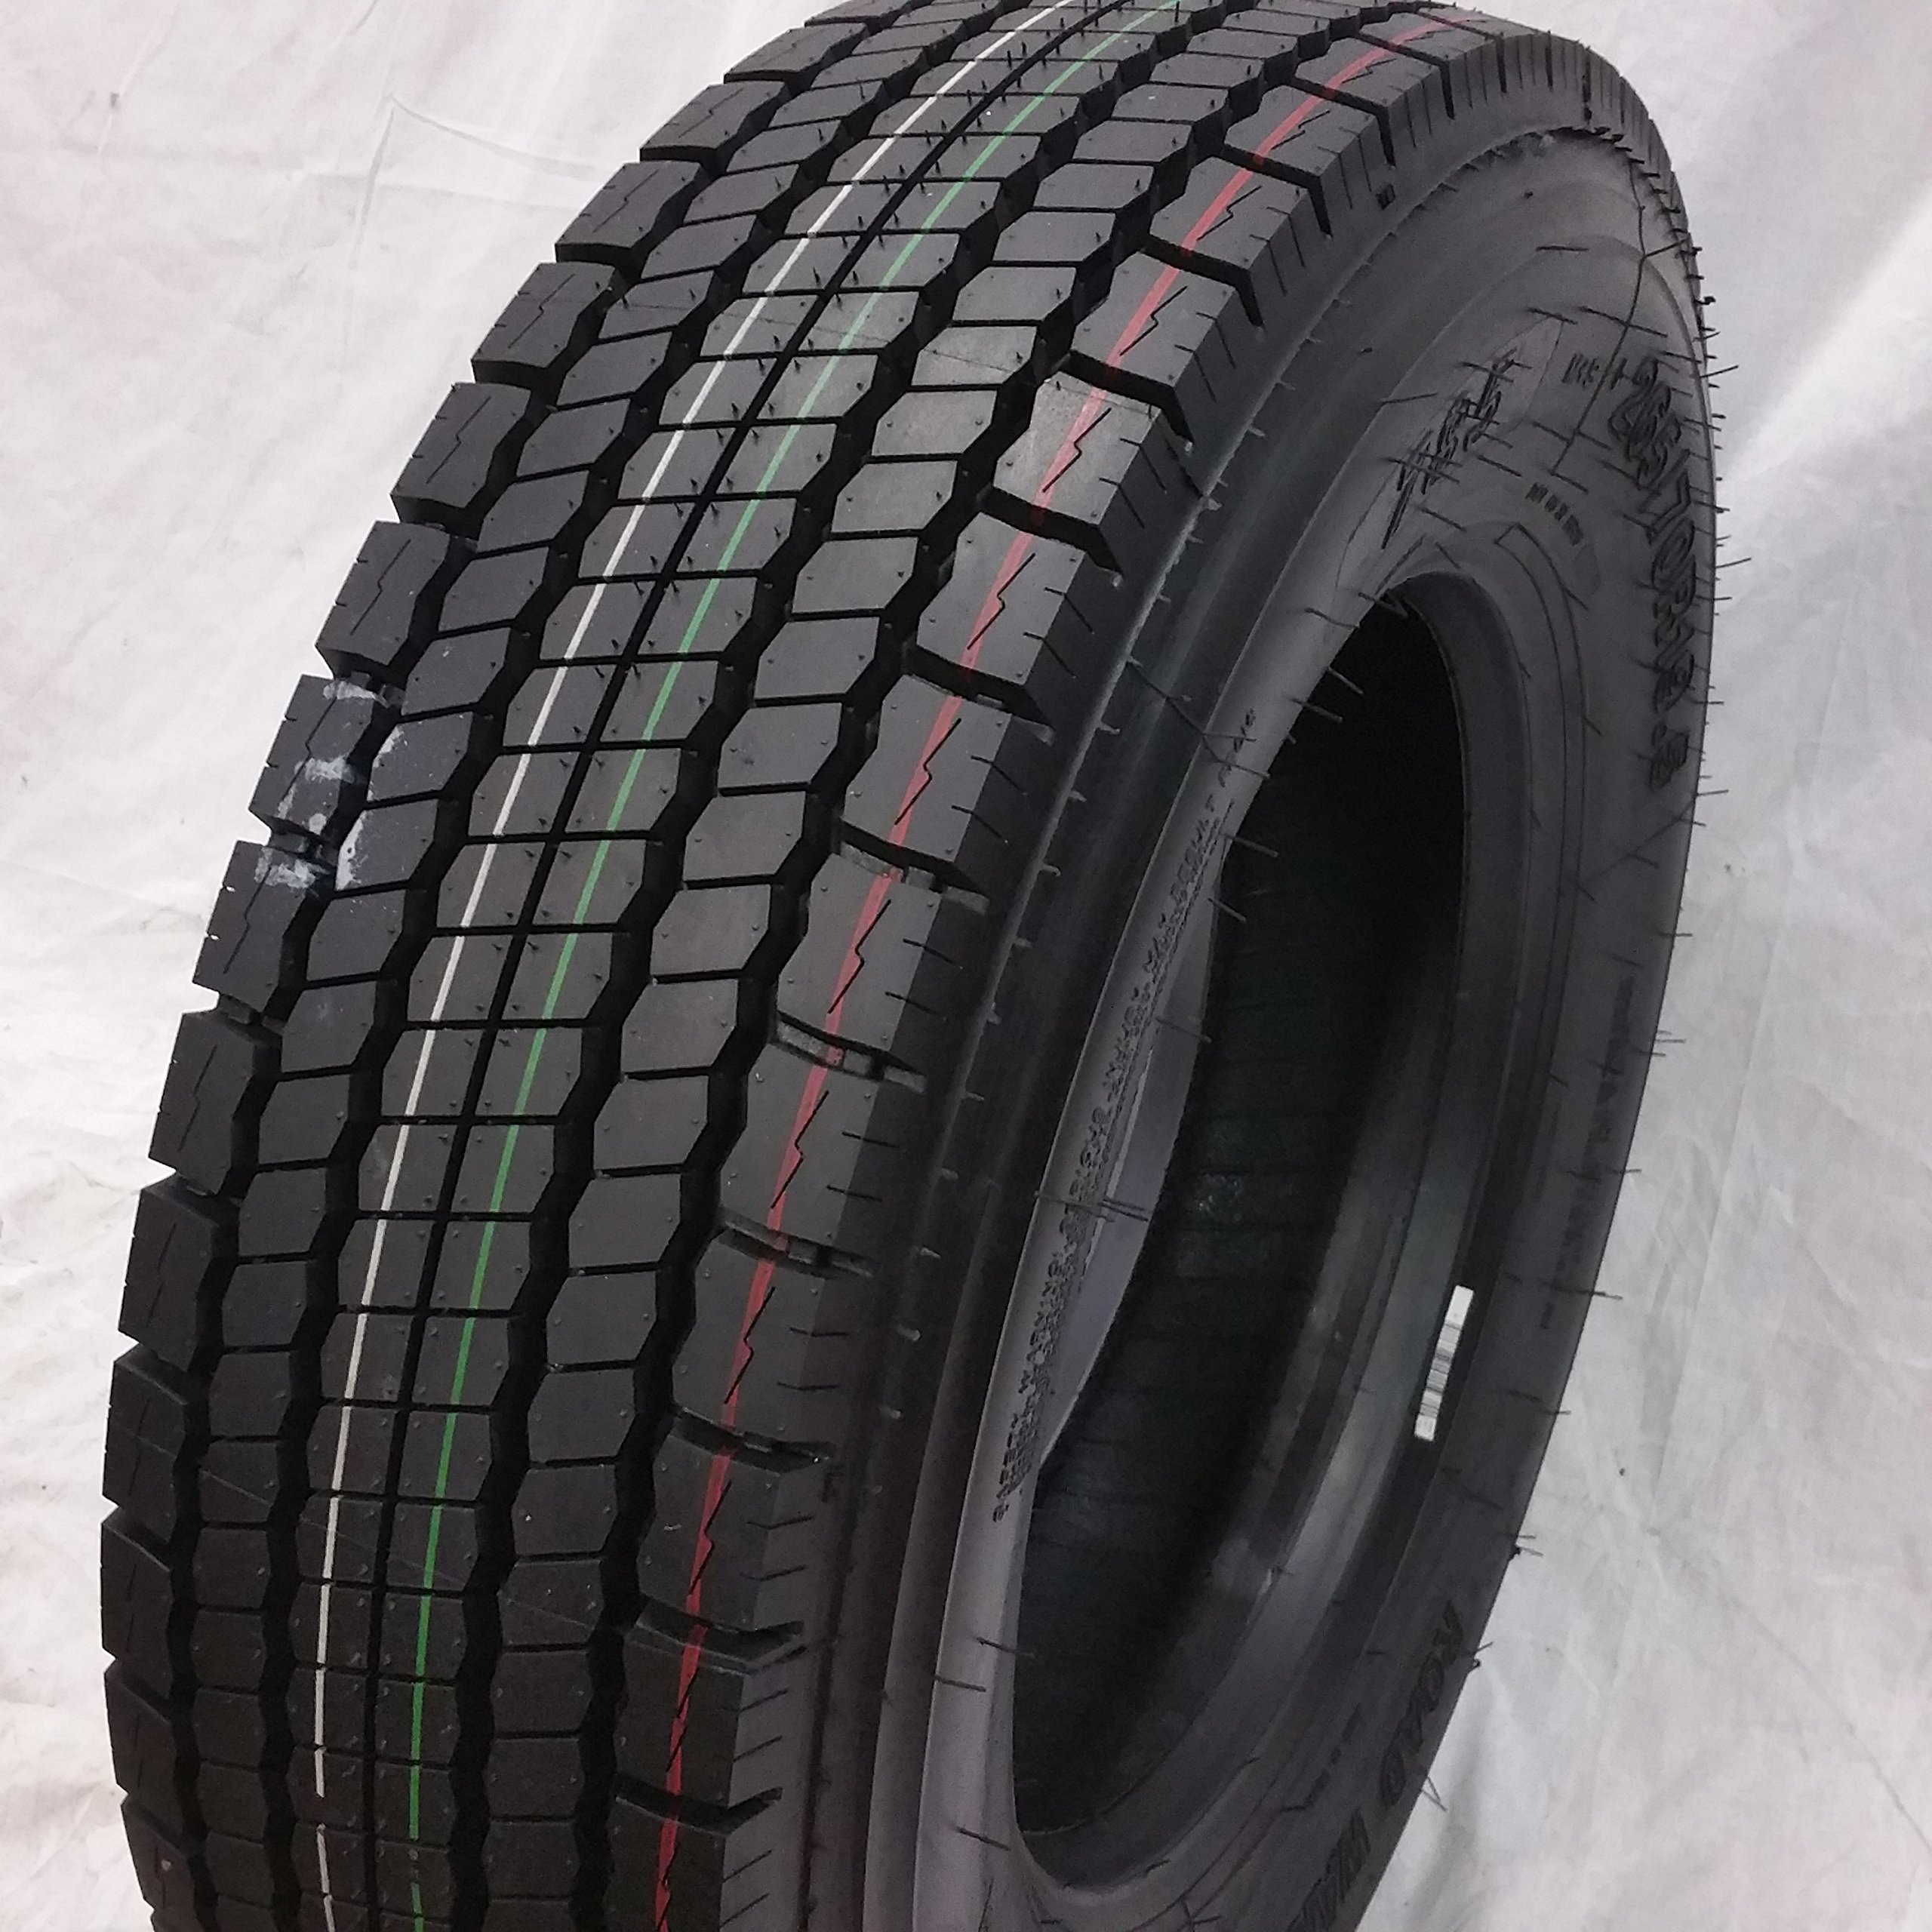 (1-TIRE) 245/70R19.5 H/16 NEW ROAD WARRIOR DRIVE ALL POSITION TIRES 16 PLY 24570195